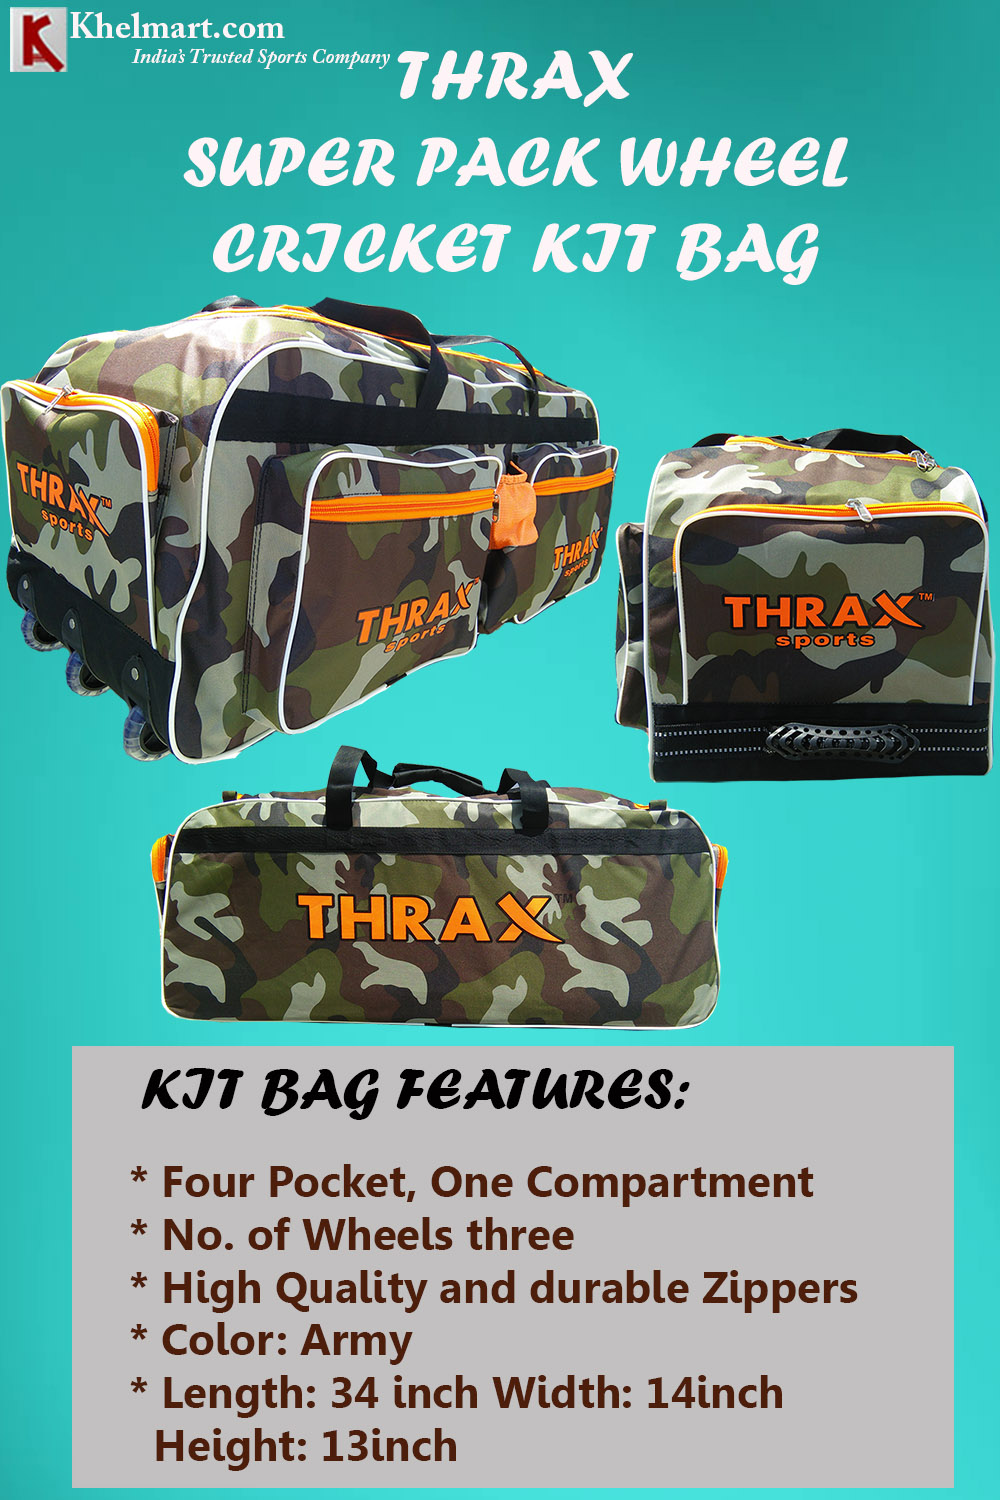 Thrax Super Pack Wheel Cricket Kit Bag